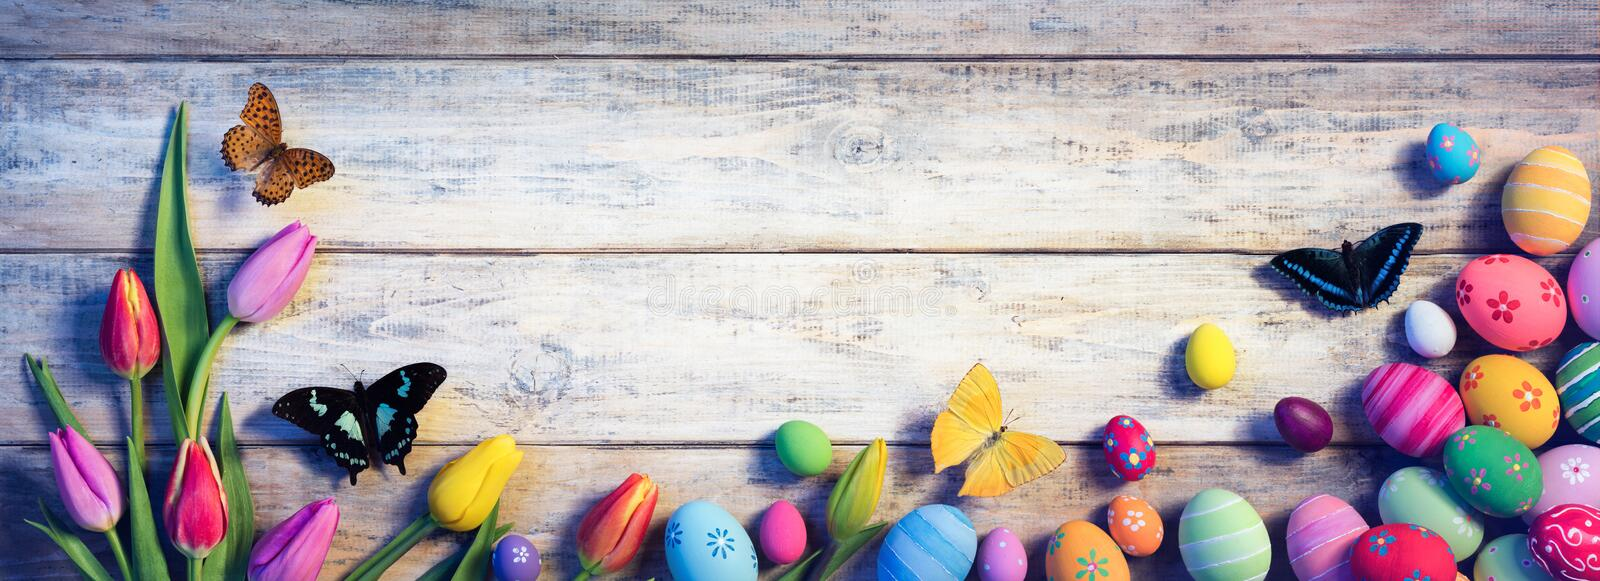 Easter - Tulips With Butterflies And Painted Eggs stock image